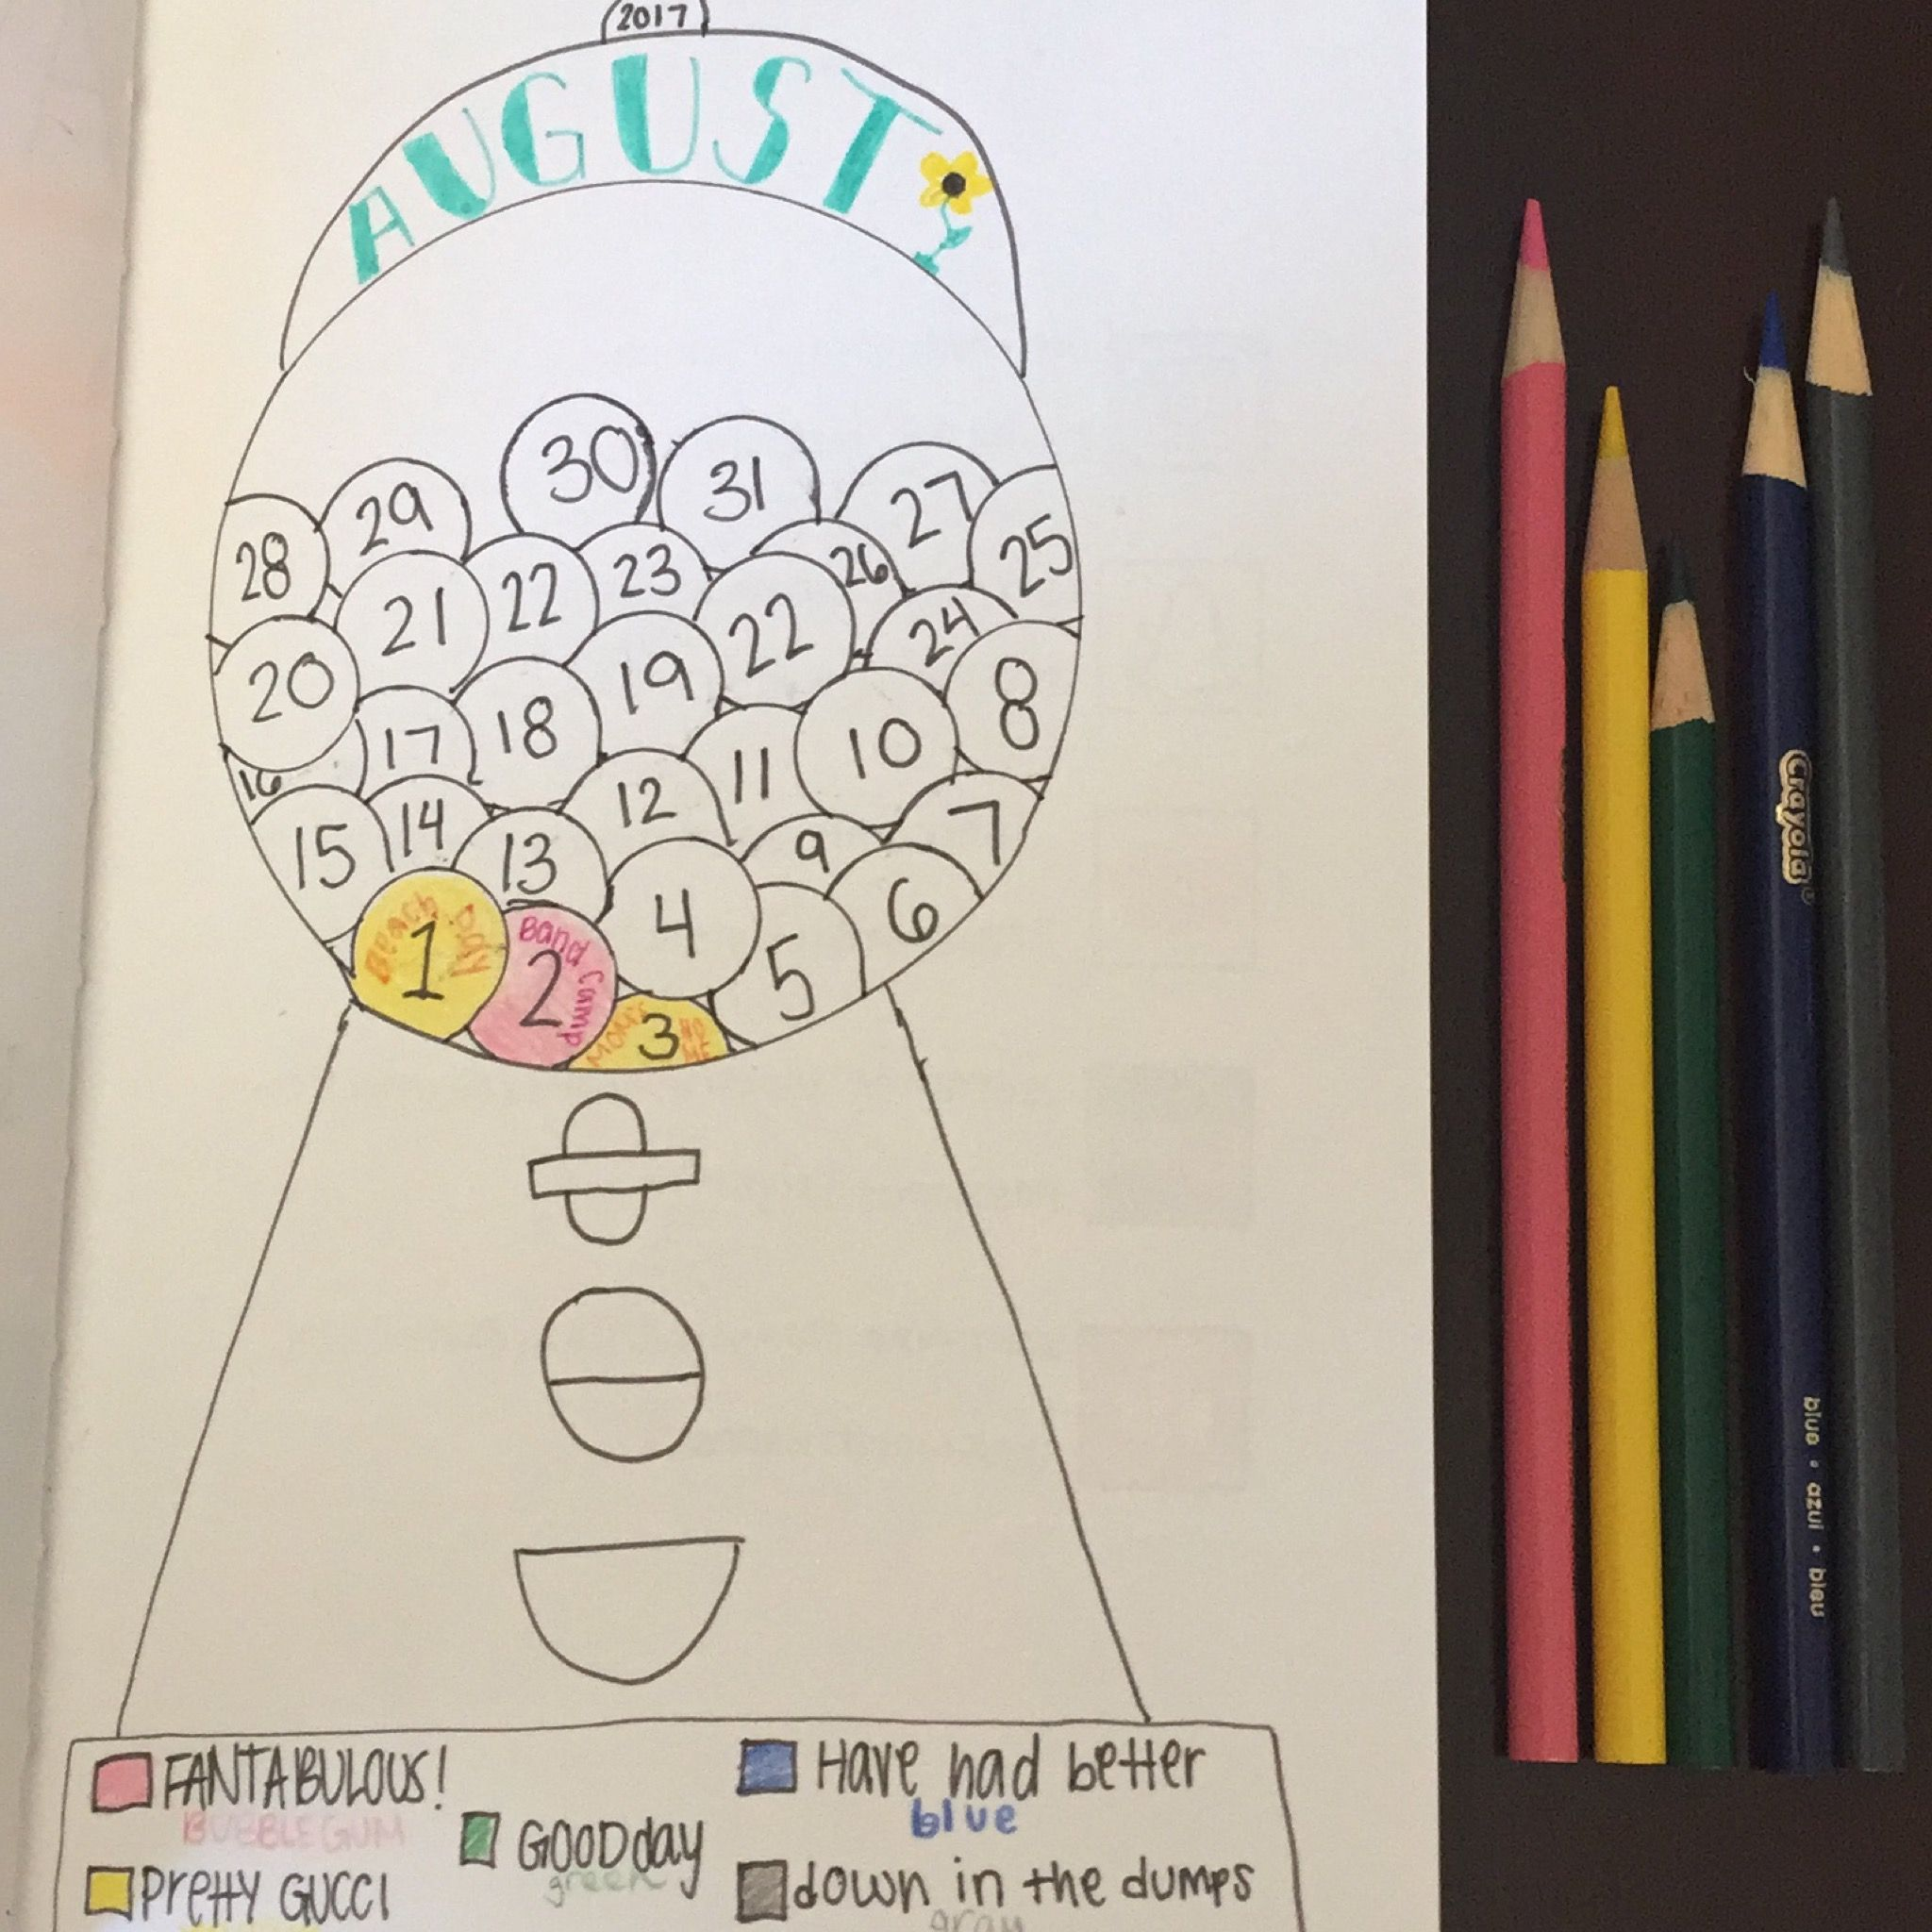 My Mood Tracker for August